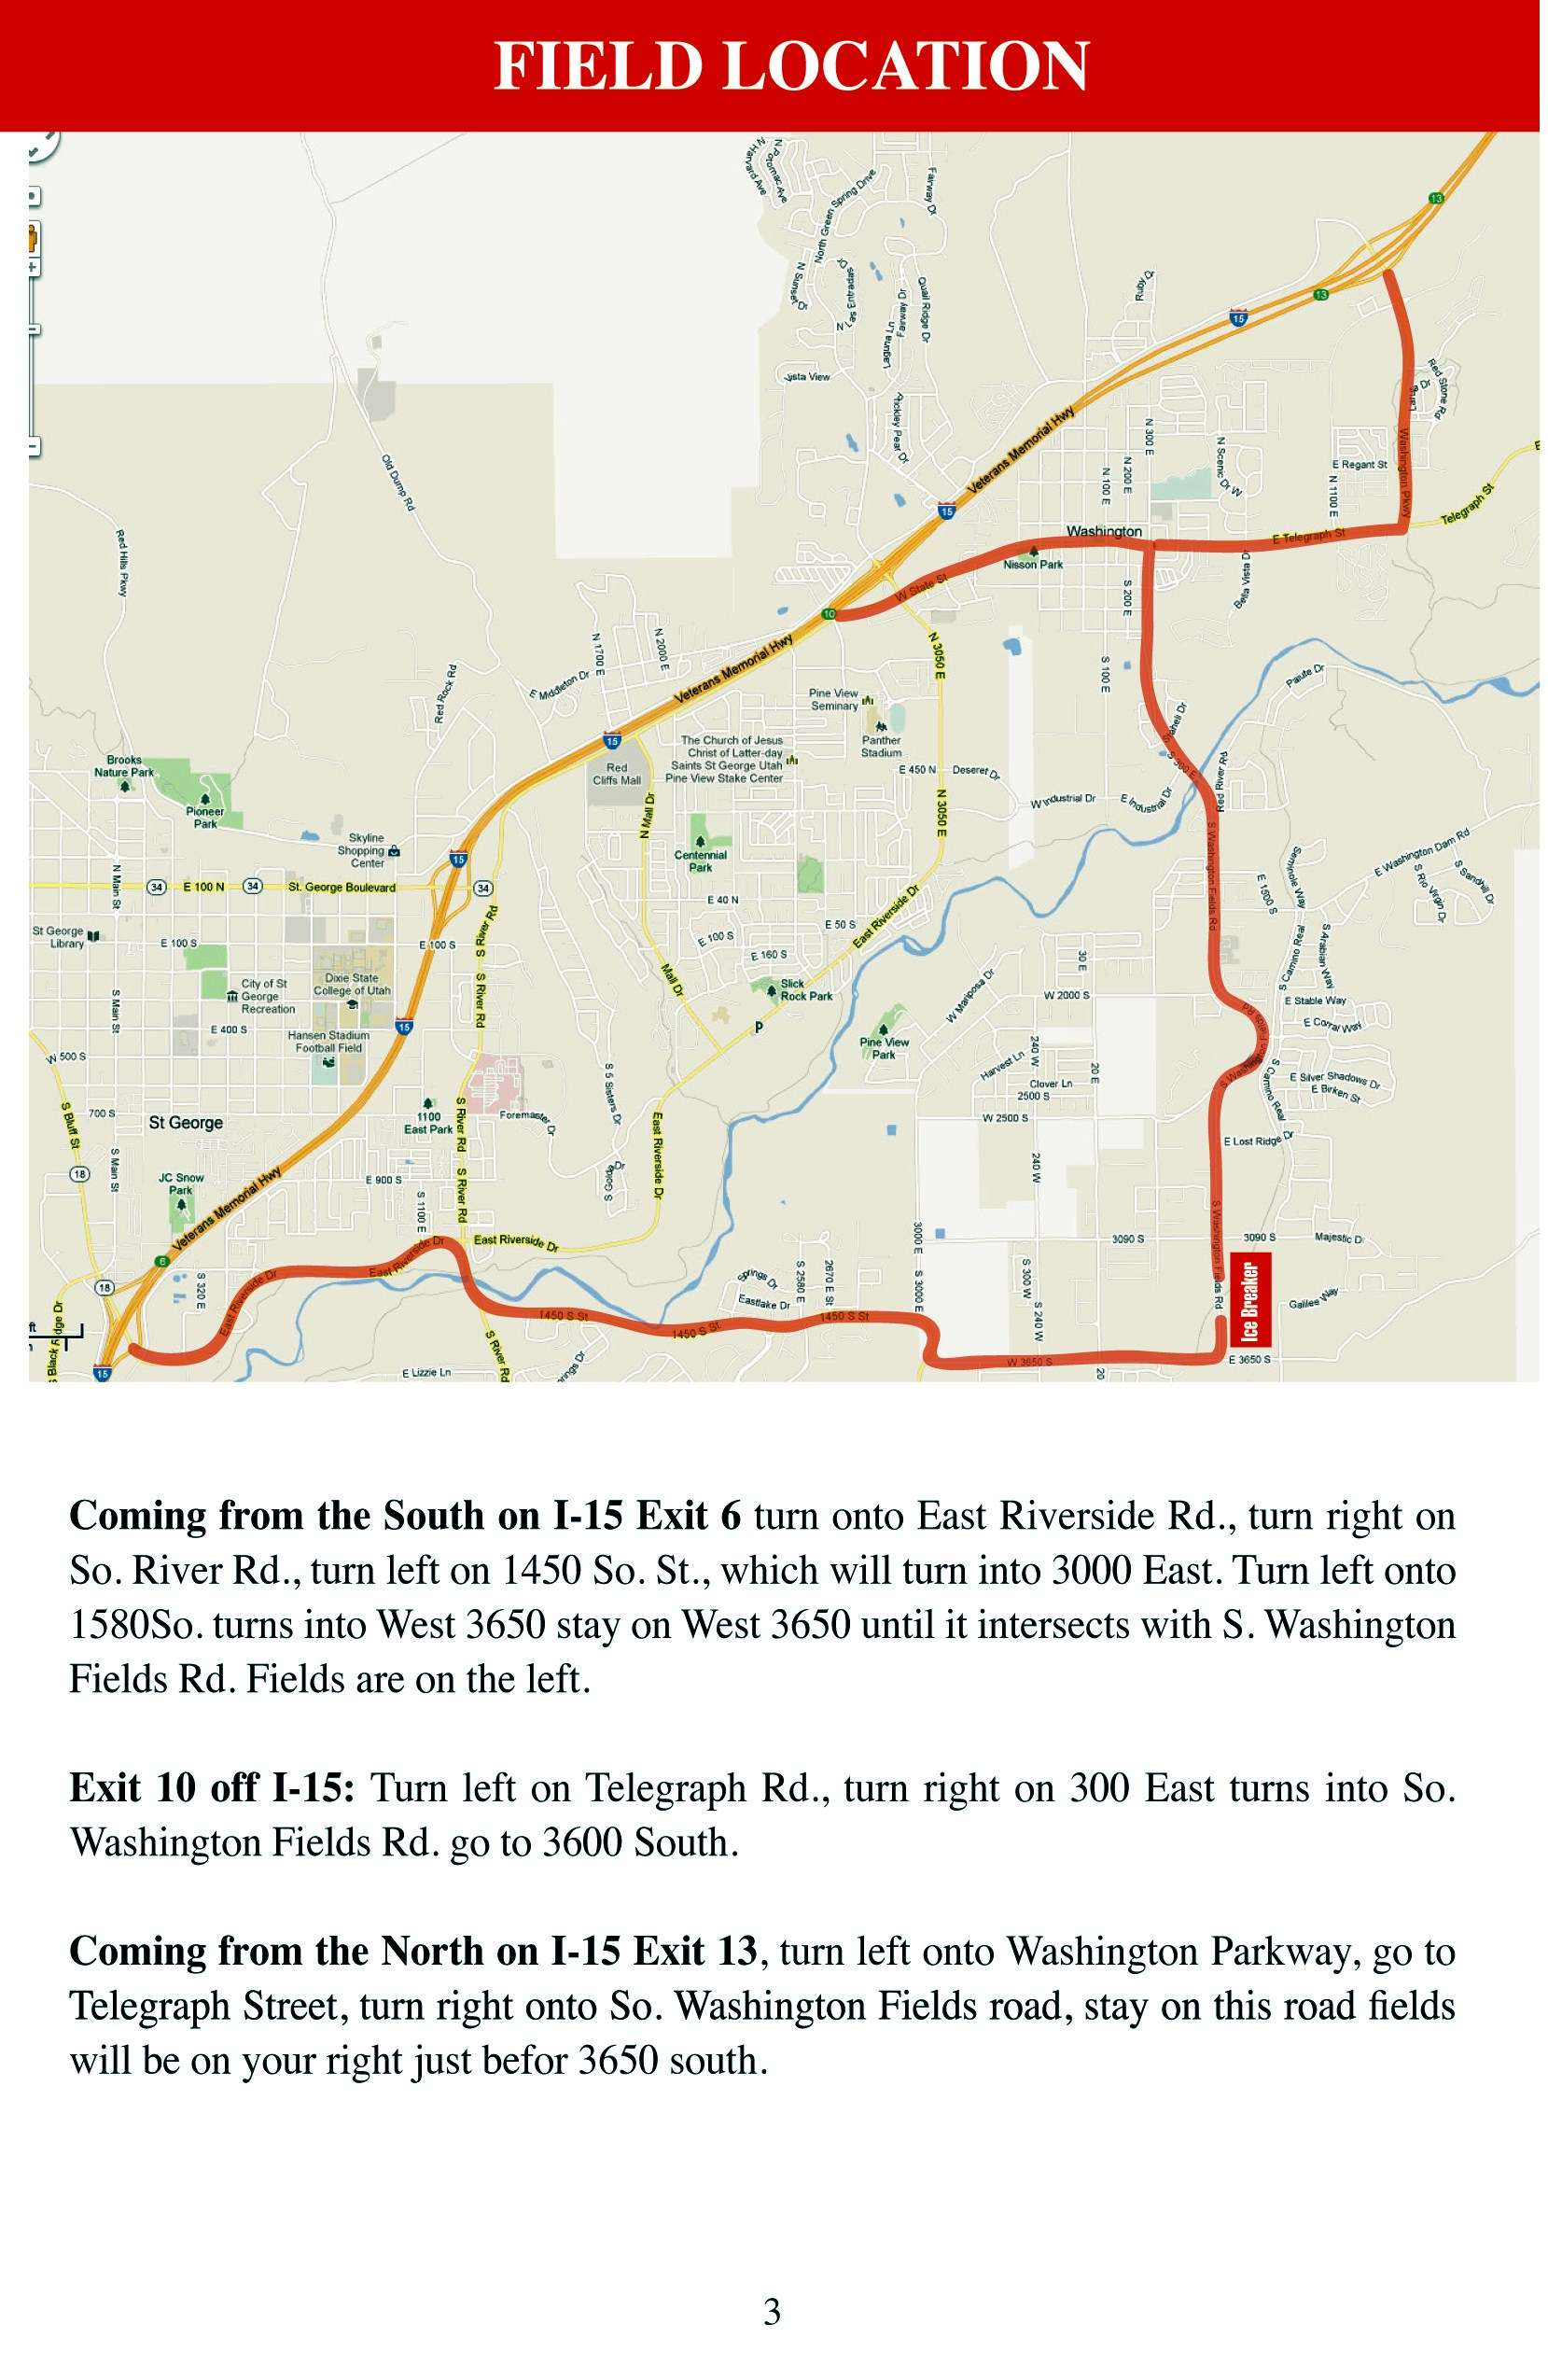 2012 Field Directions.jpg